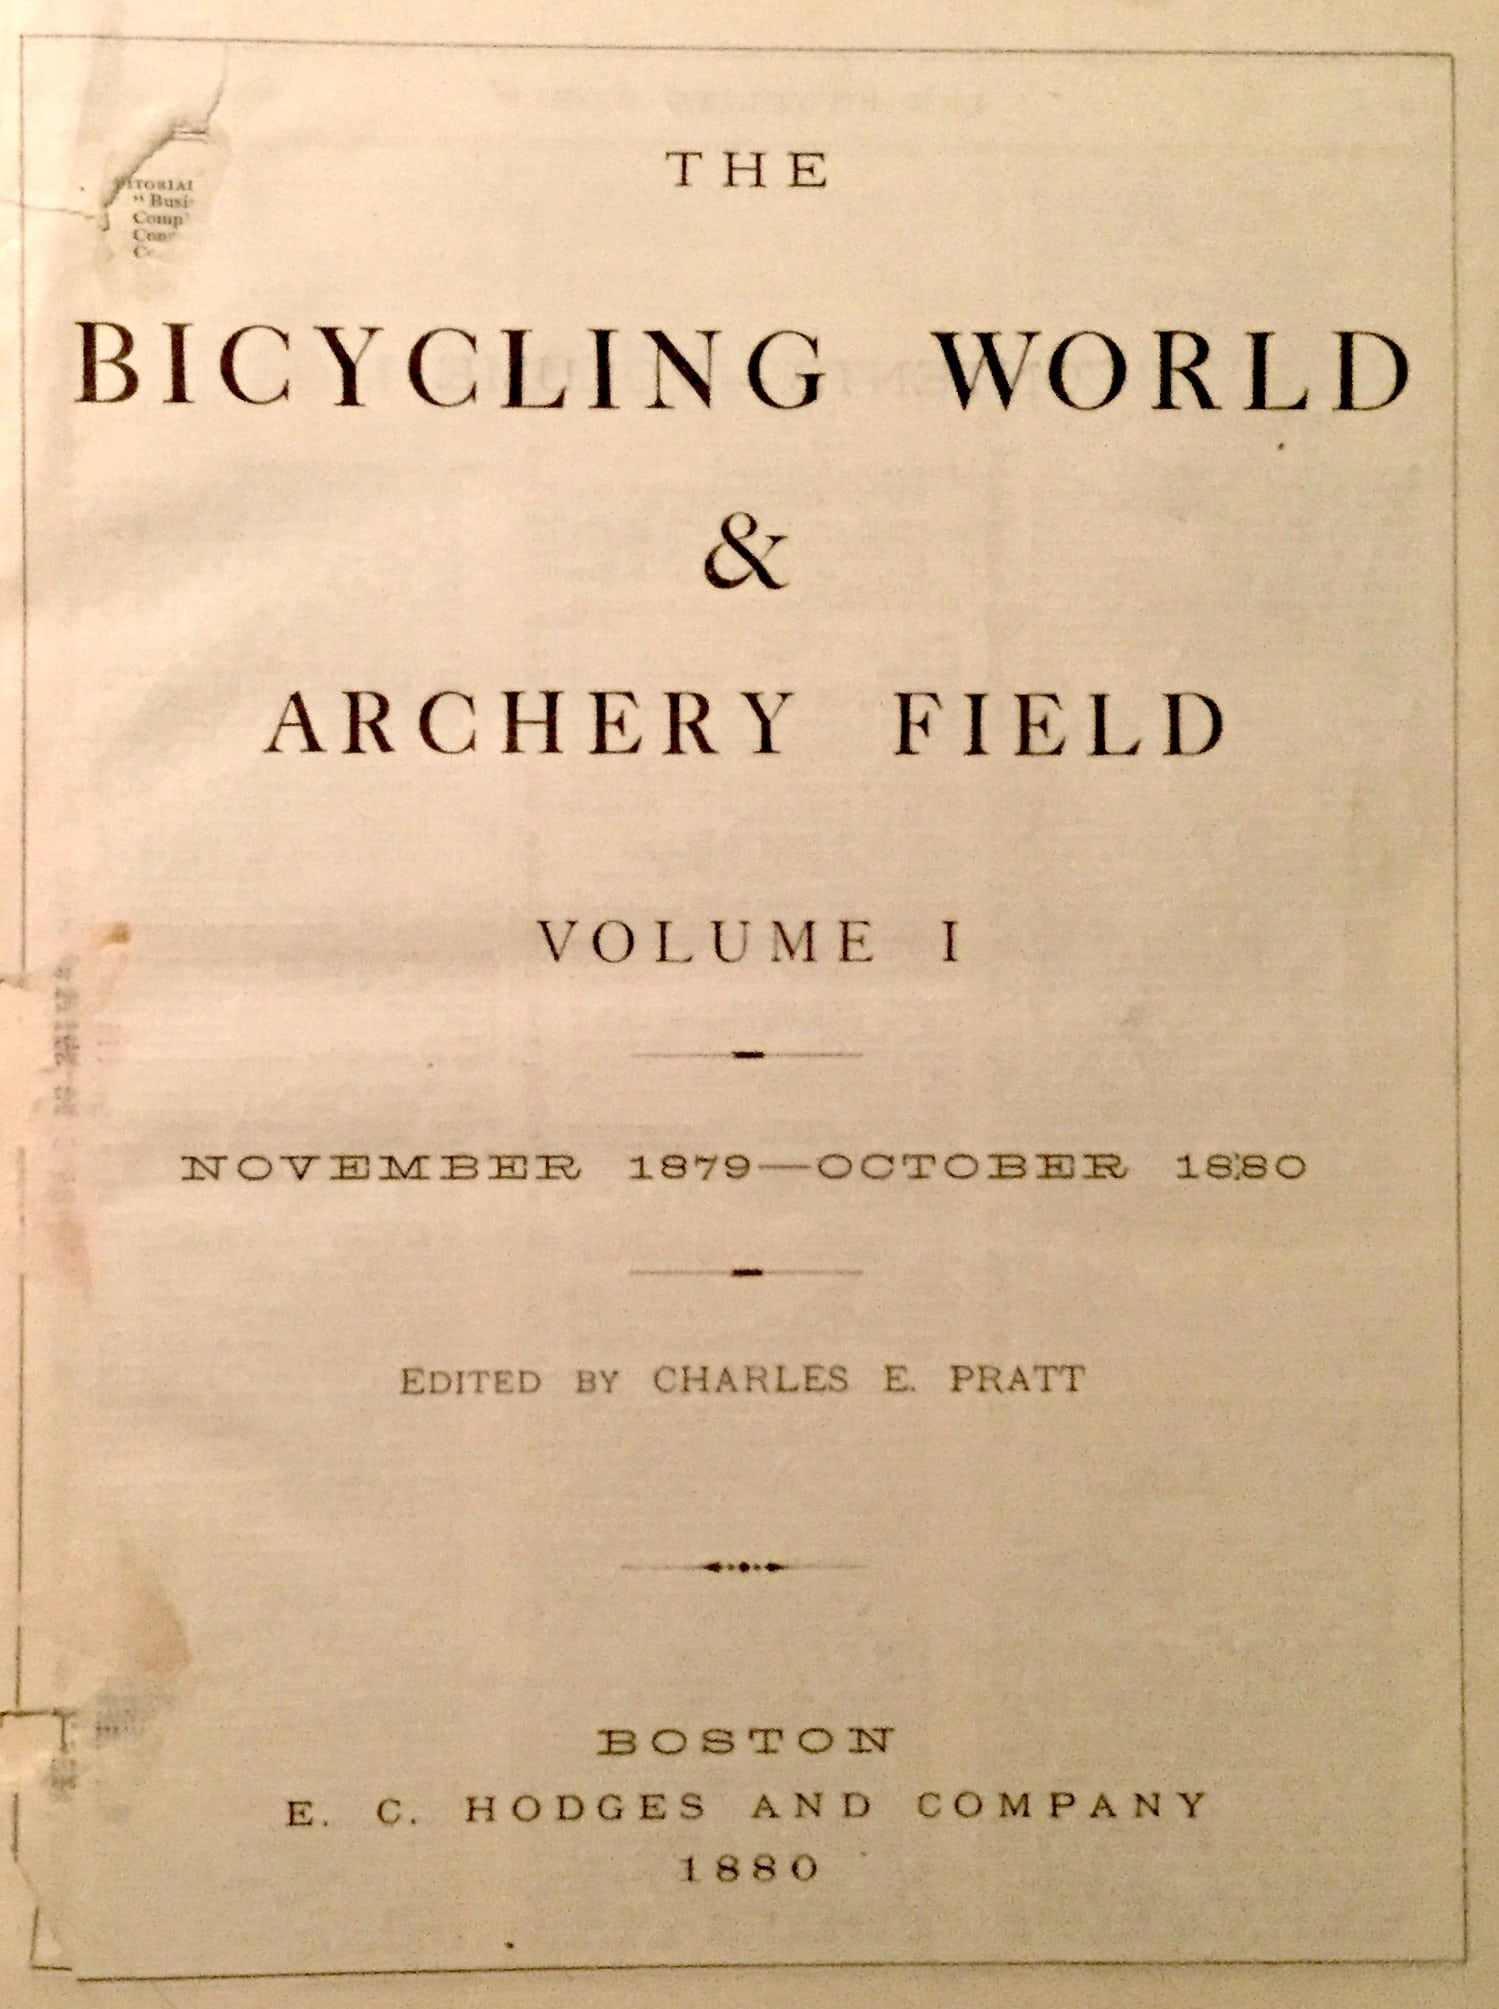 Bicycling World and Archery Field